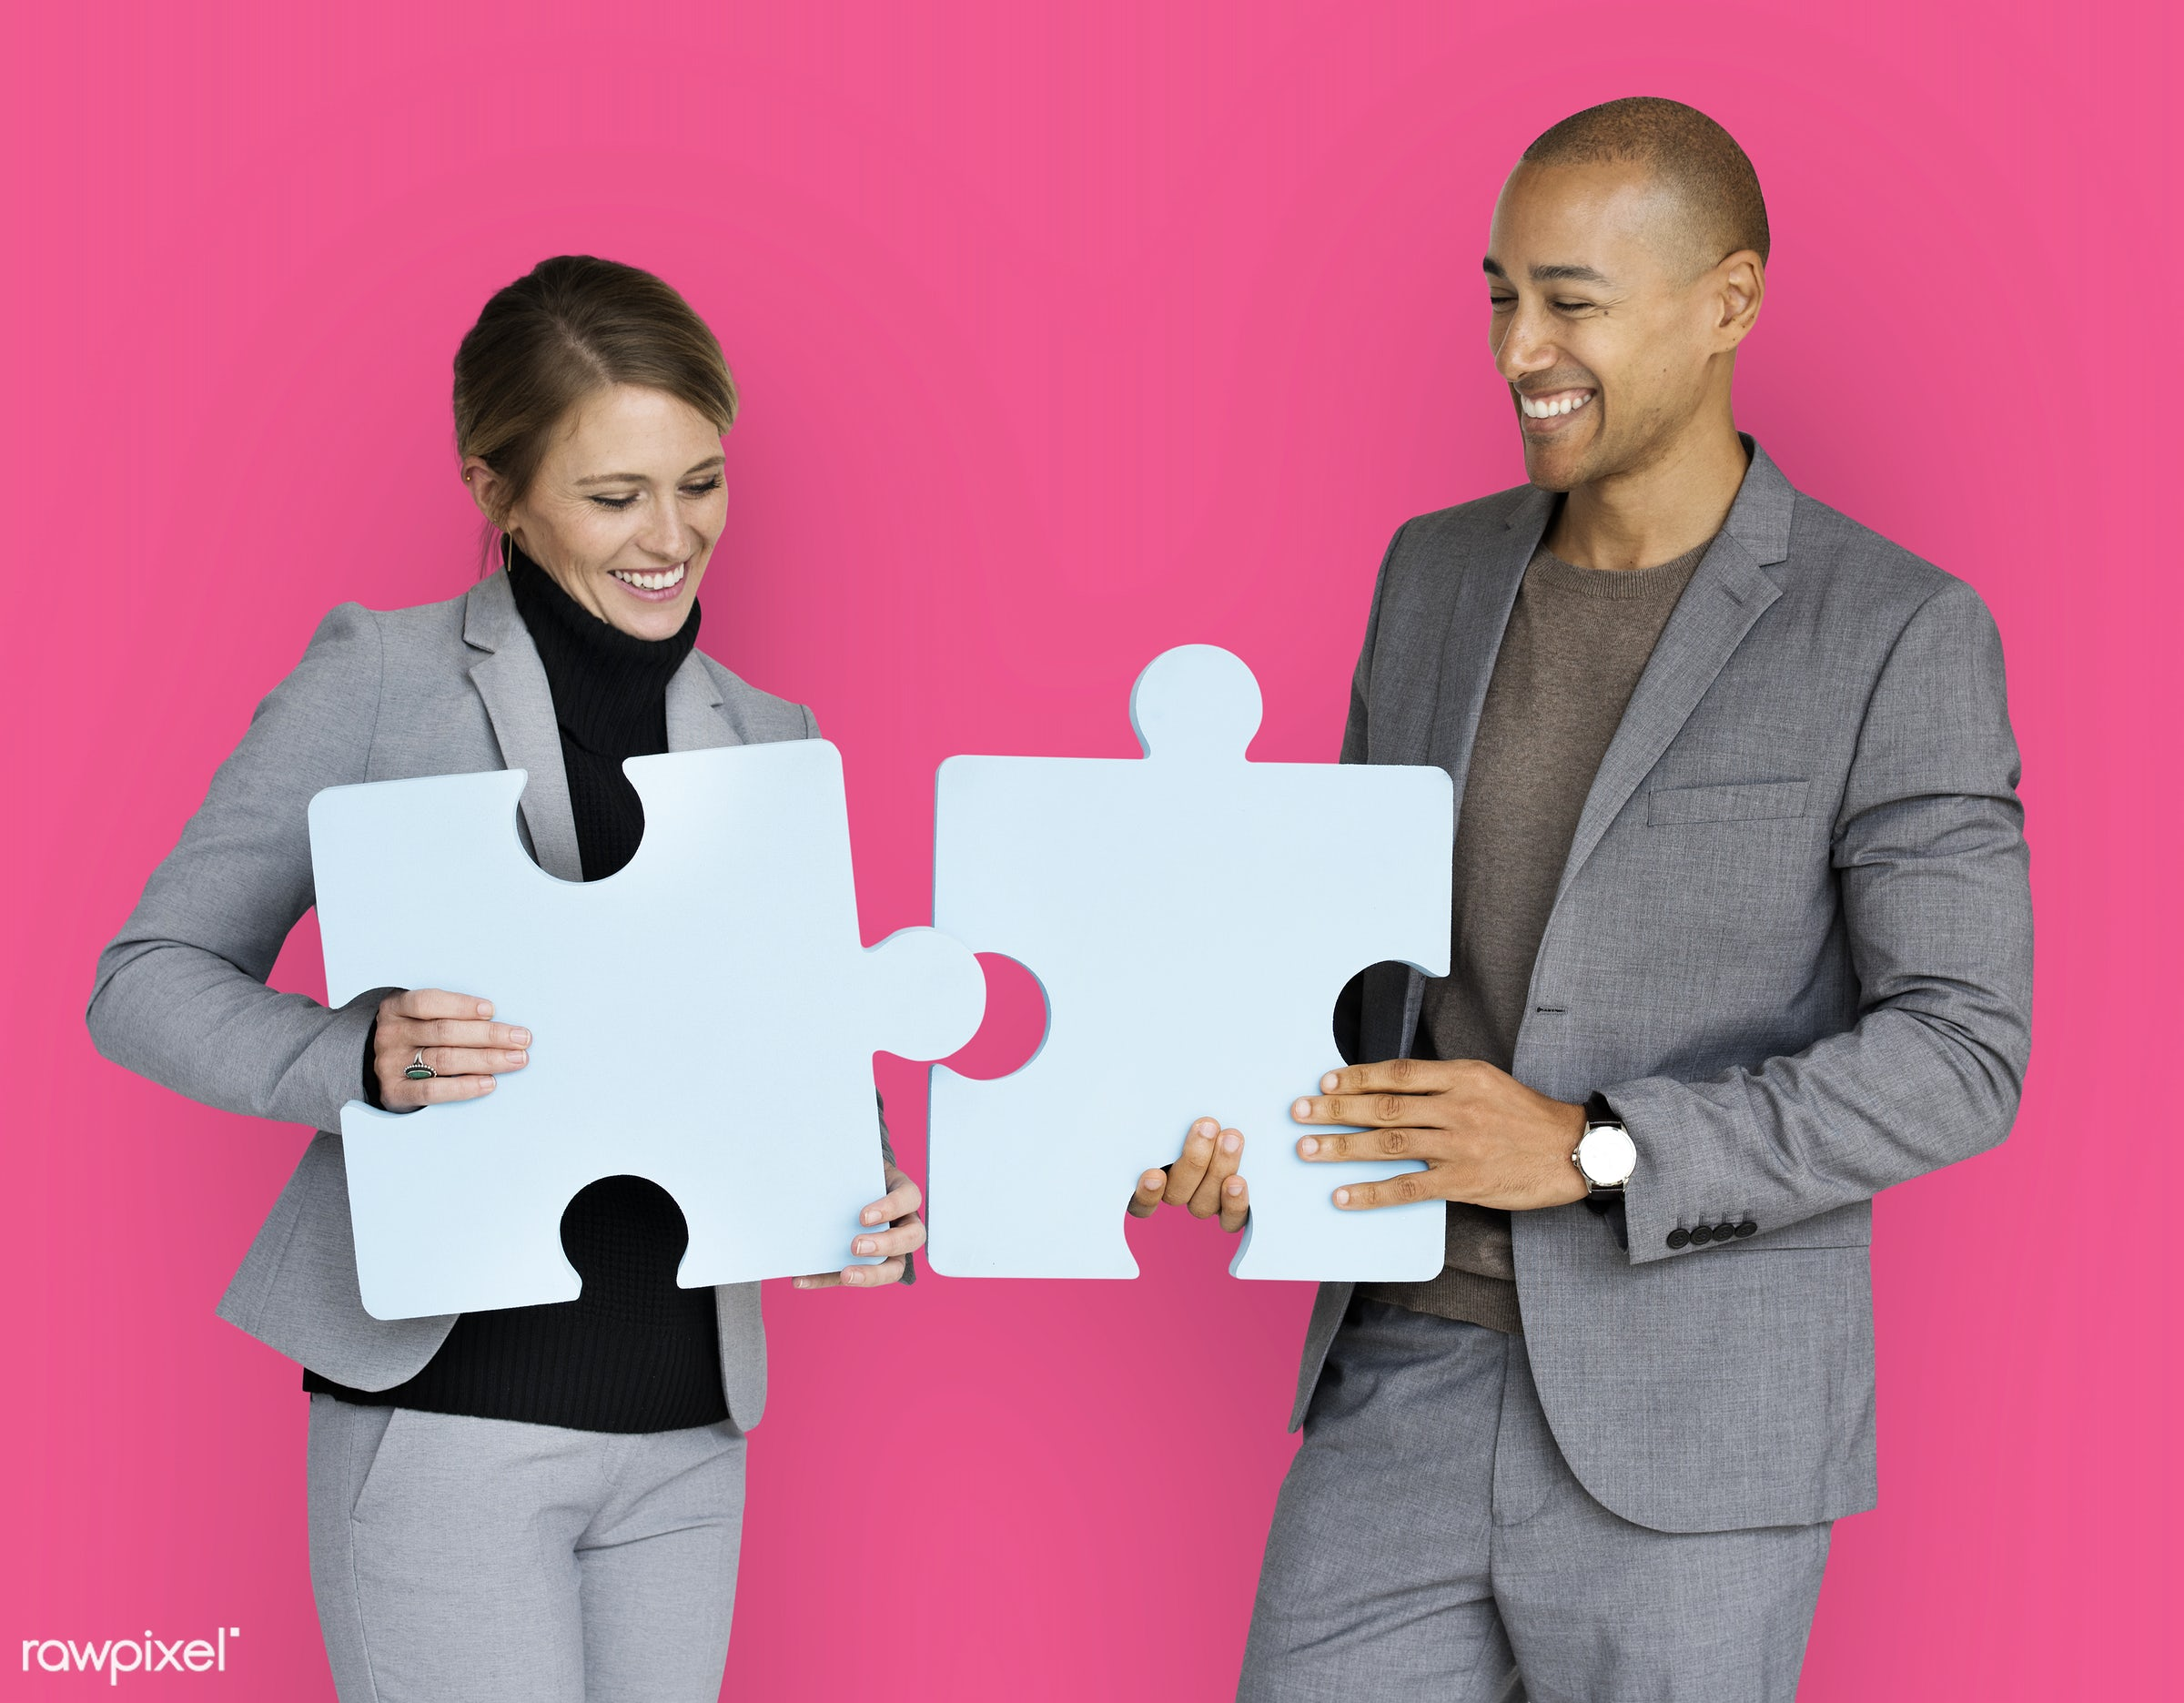 studio, expression, person, jigsaw, holding, people, teamwork, woman, pink, cheerful, smiling, isolated, connection, symbol...